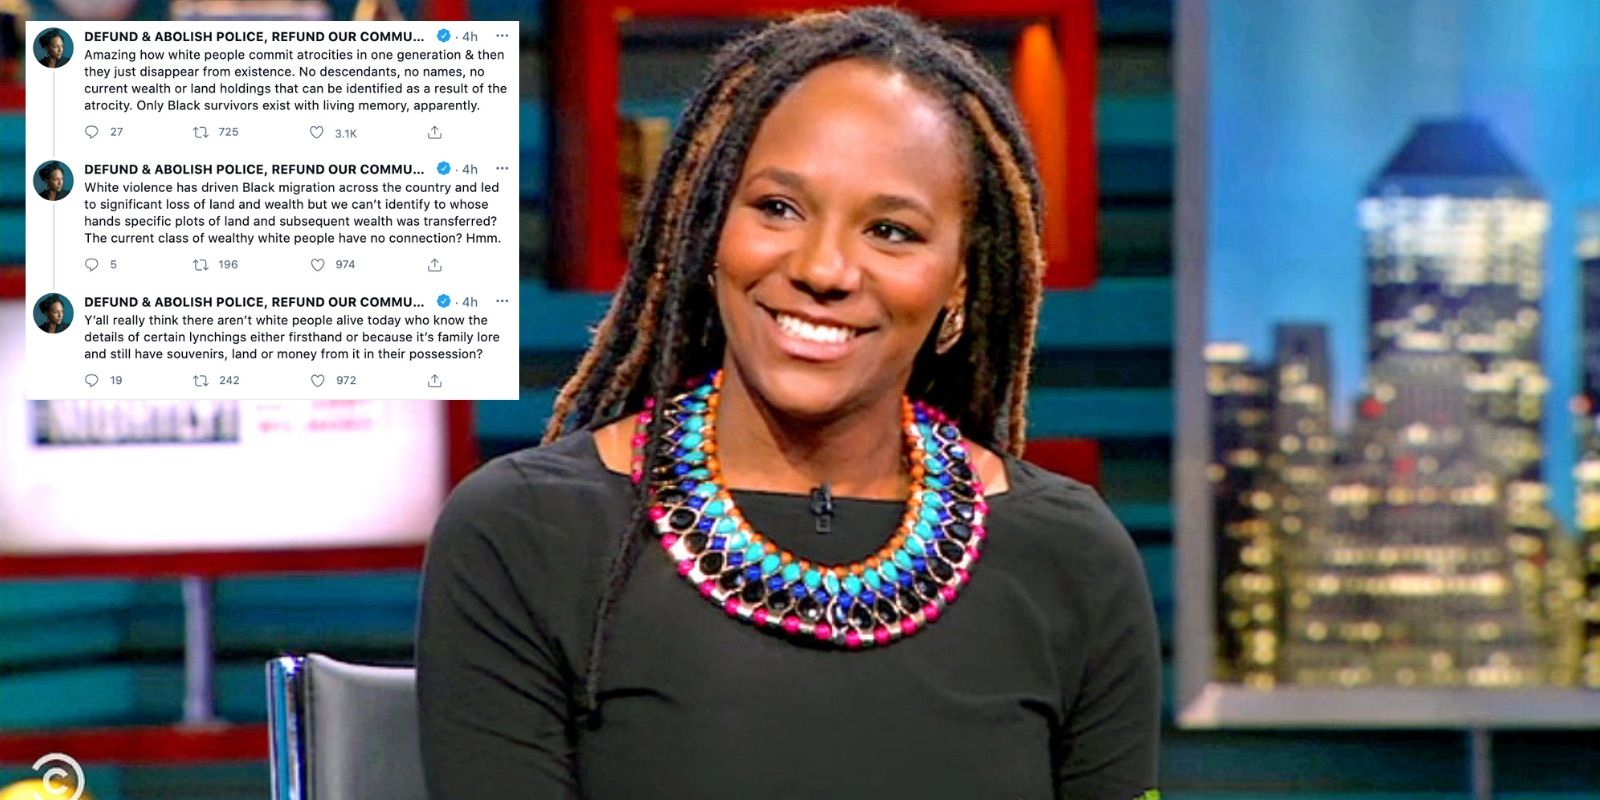 BLM activist Bree Newsome calls for land reapportionment as part of reparations